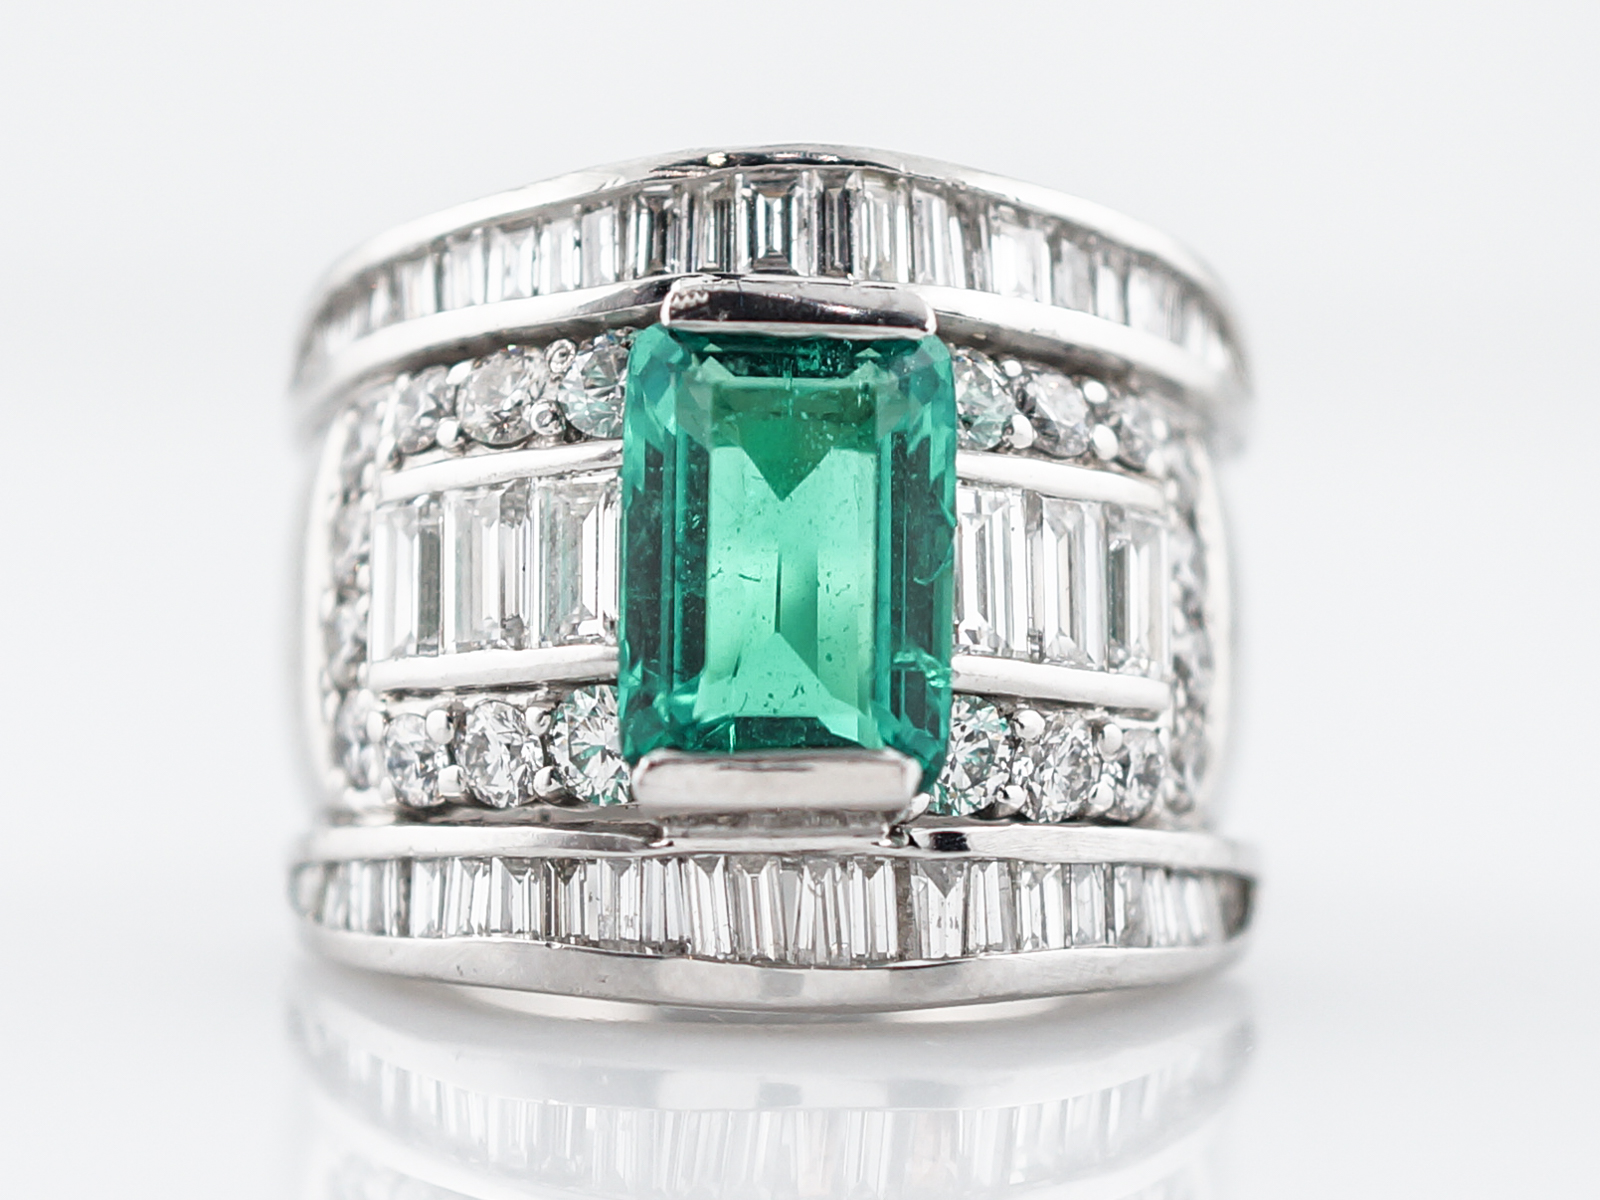 Right Hand Ring Modern 3.08 GIA Emerald Cut Emerald in Platinum -1